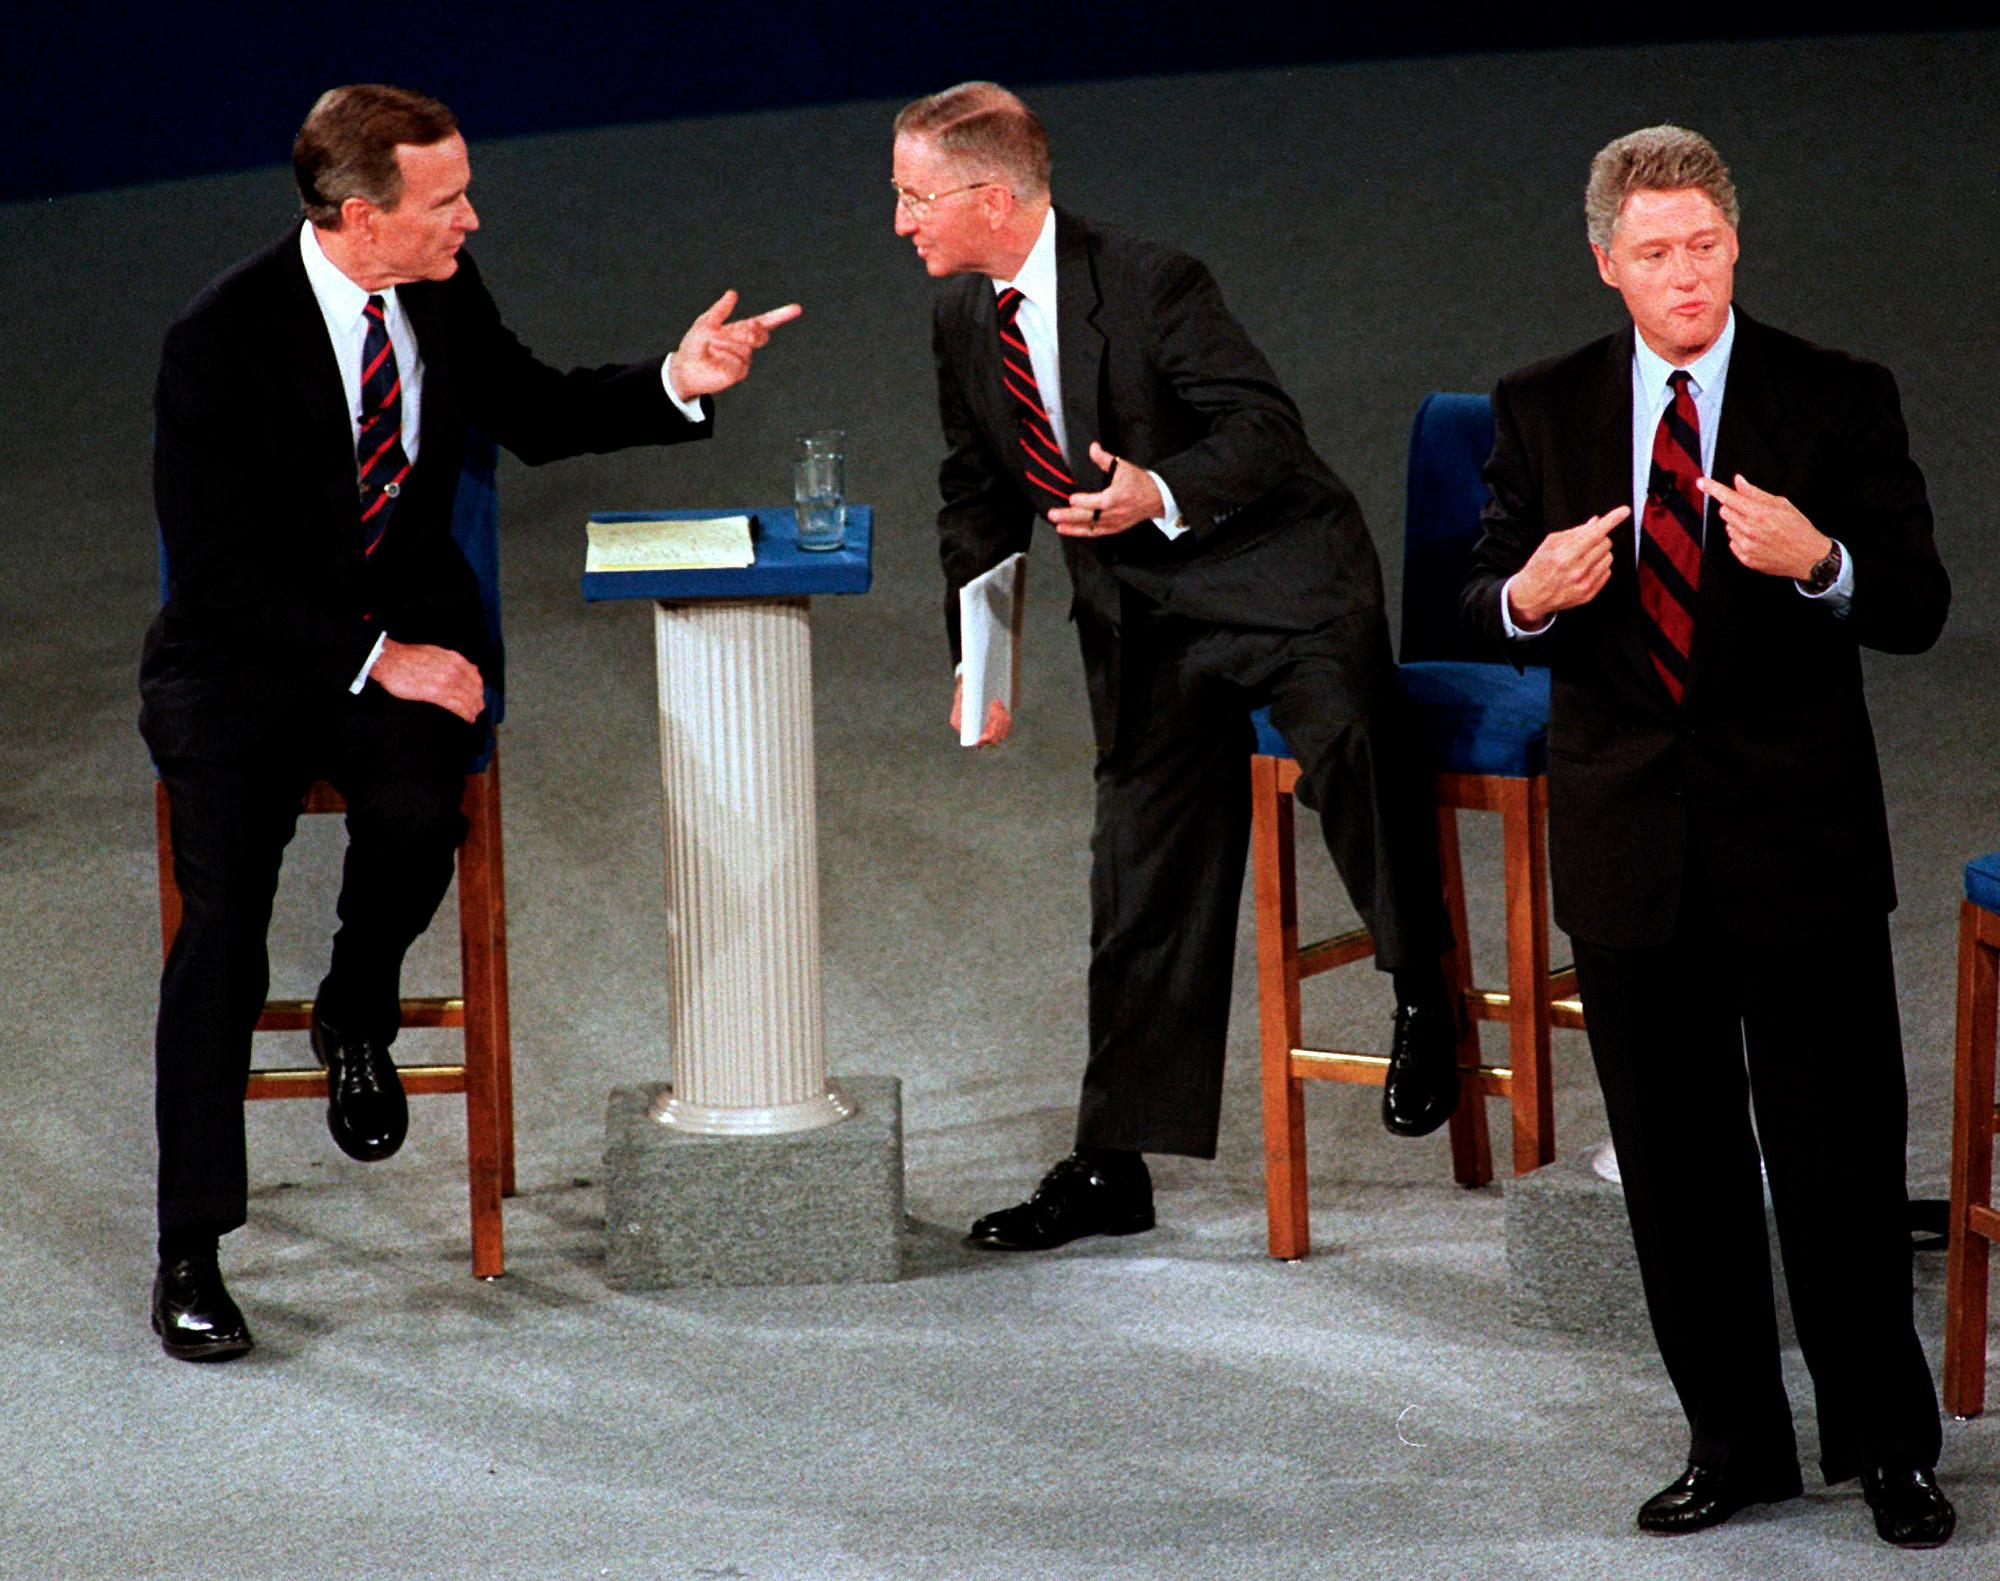 FILE - In this Oct. 15, 1992, file photo, President George H.W. Bush, left, talks with independent candidate Ross Perot as Democratic candidate Bill Clinton stands aside at the end of their second presidential debate in Richmond, Va. Bush died at the age of 94 on Friday, Nov. 30, 2018, about eight months after the death of his wife, Barbara Bush. (AP Photo/Marcy Nighswander, File)